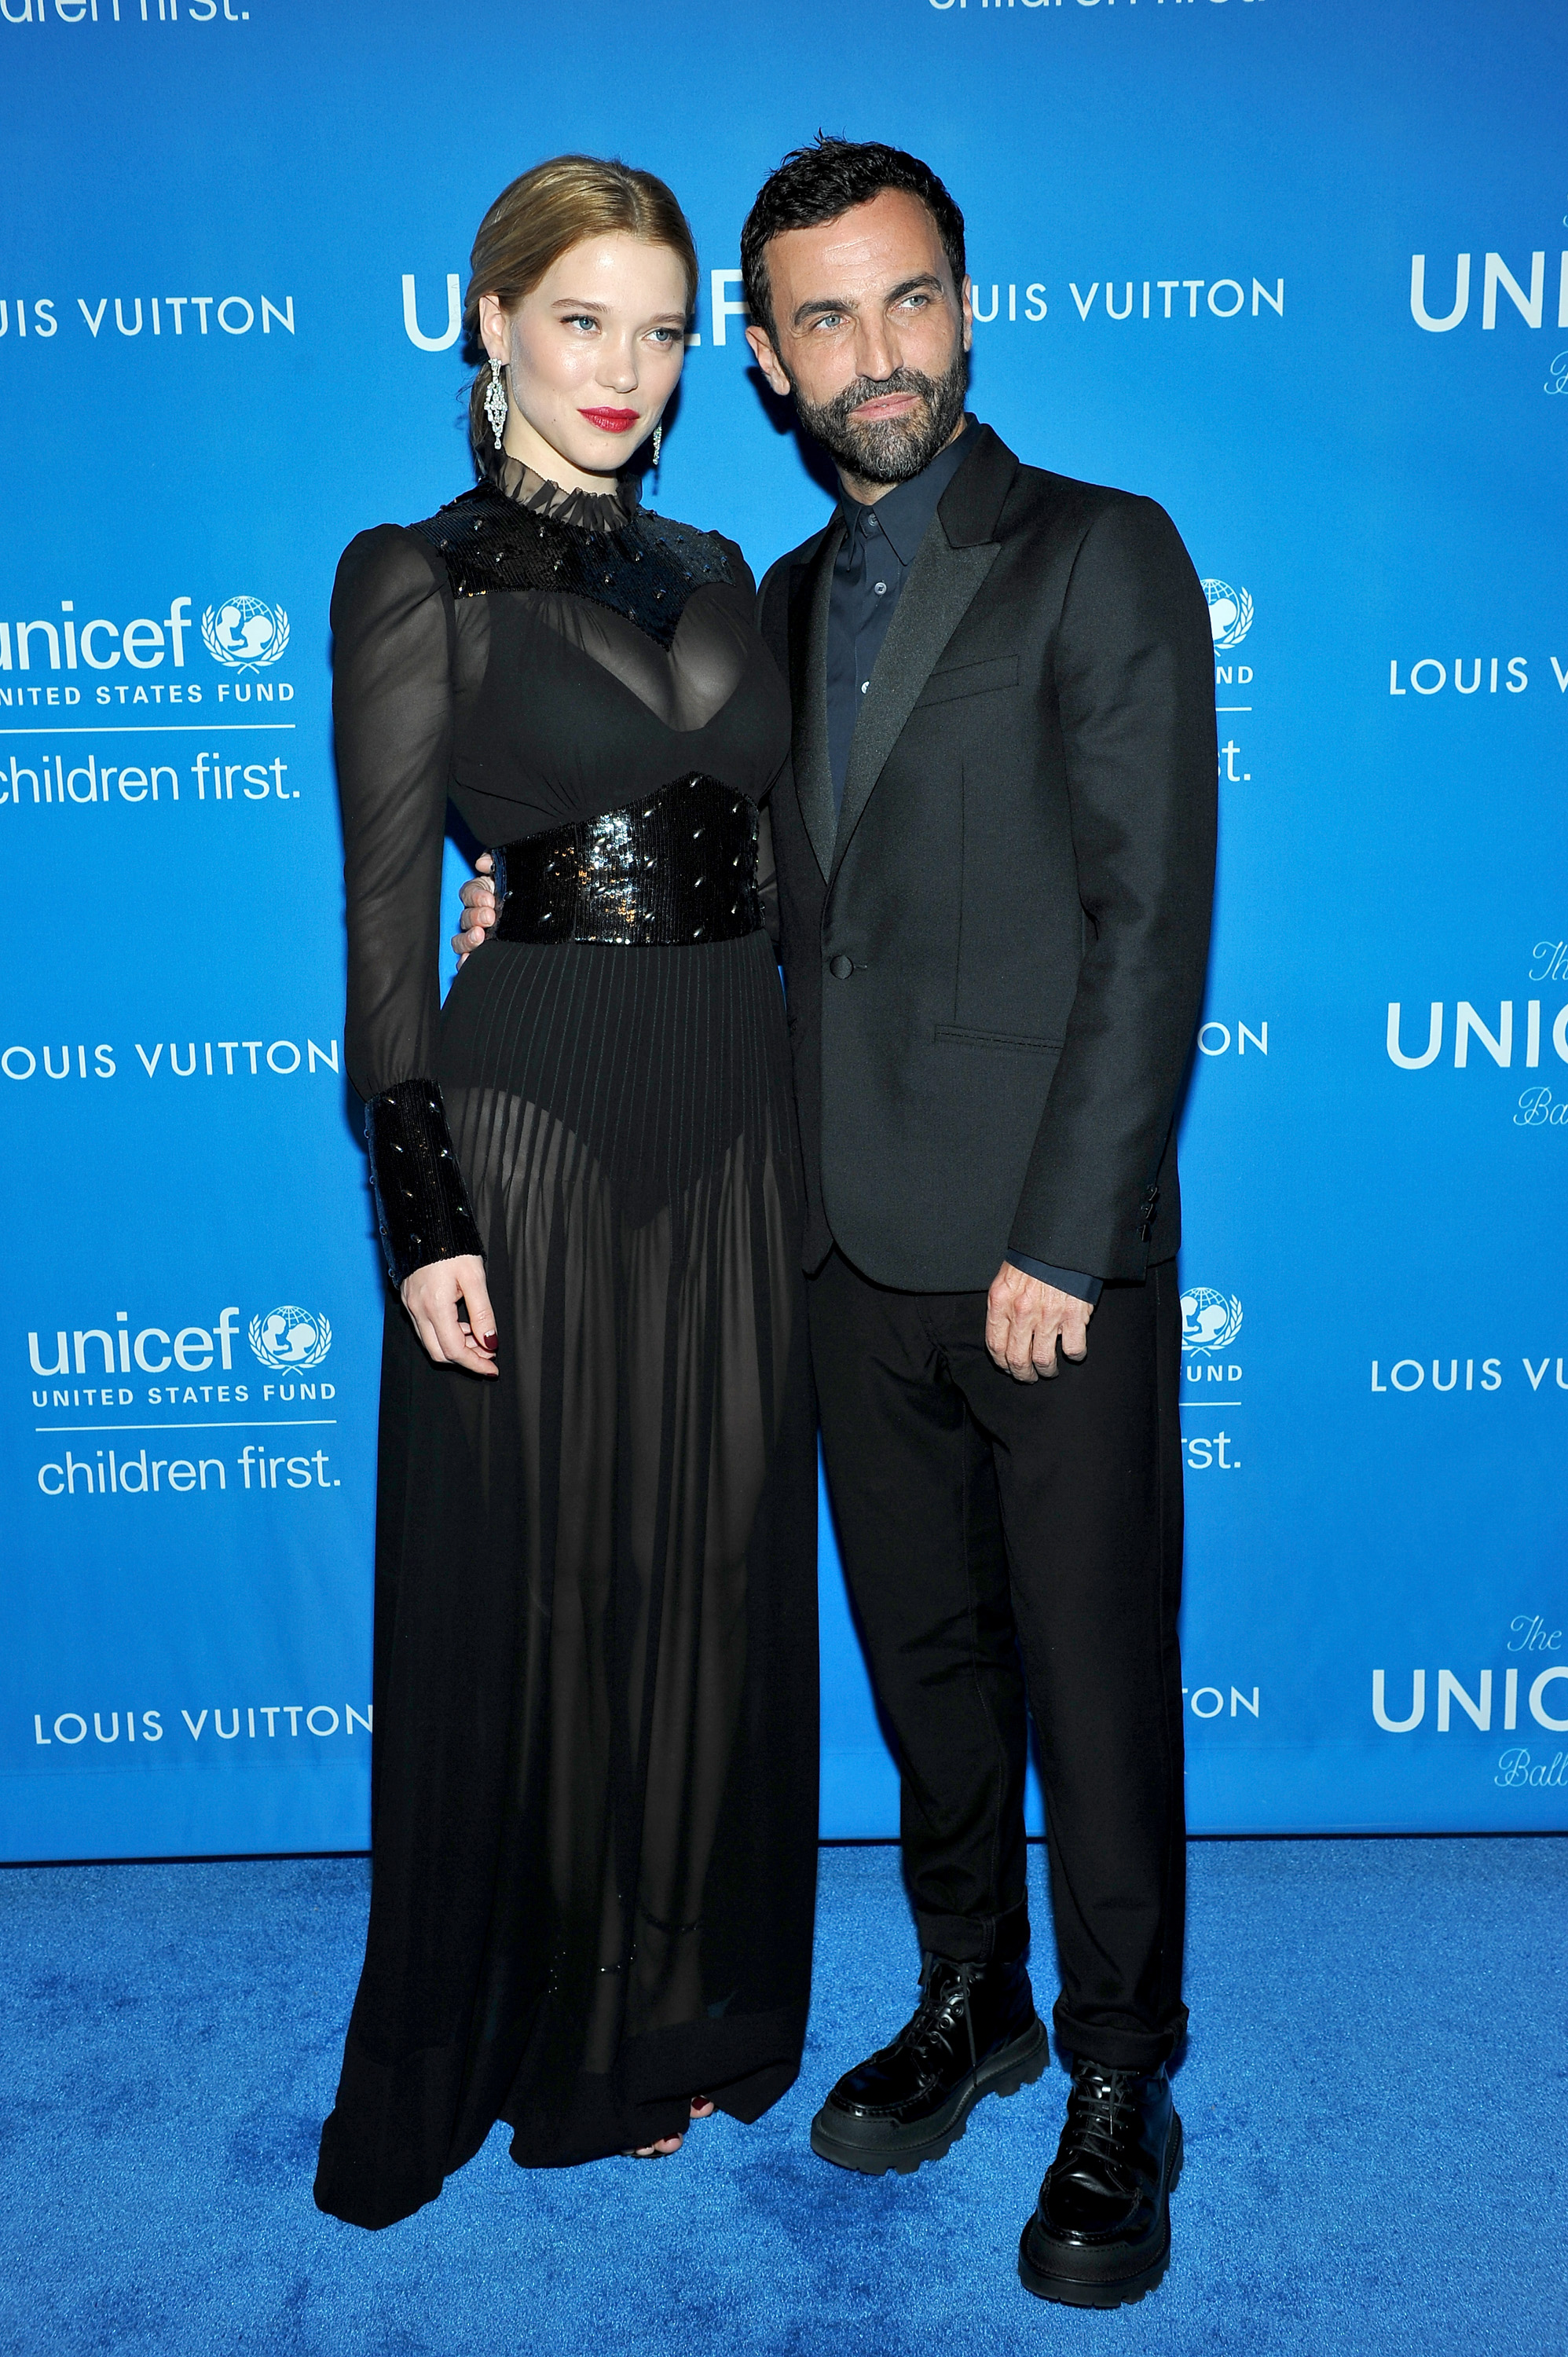 Lea Seydoux and Nicolas Ghesquiere at the 2016 UNICEF Ball